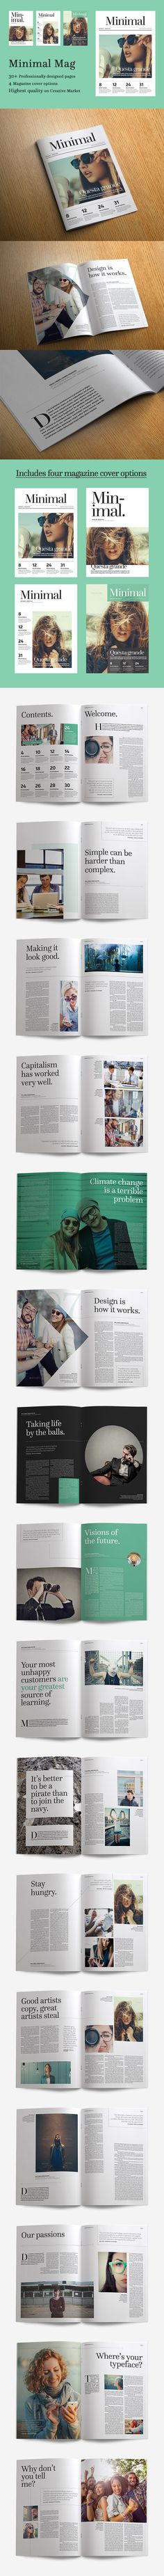 Minimal Magazine is a professional quality and easy to use magazine template. Featuring super minimal design, excellent use of white space and strong font use, this template is packed full of great page layouts suitable for a wide variety of projects. The template also includes four alternative magazine cover designs.